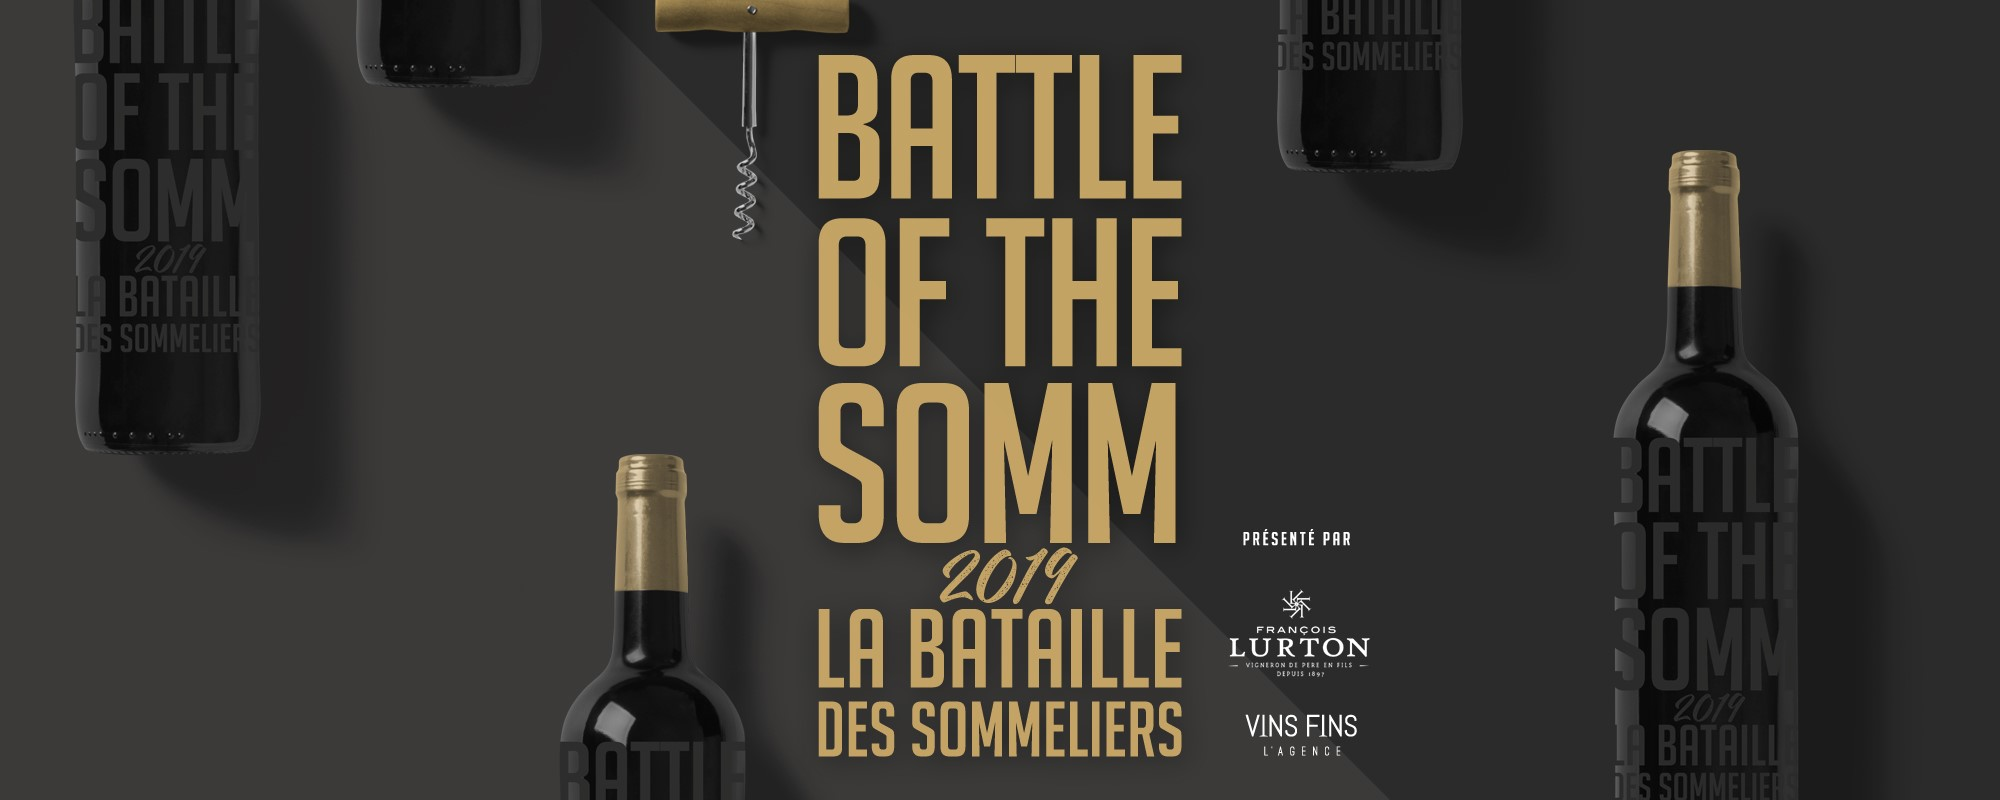 Battle of the somm